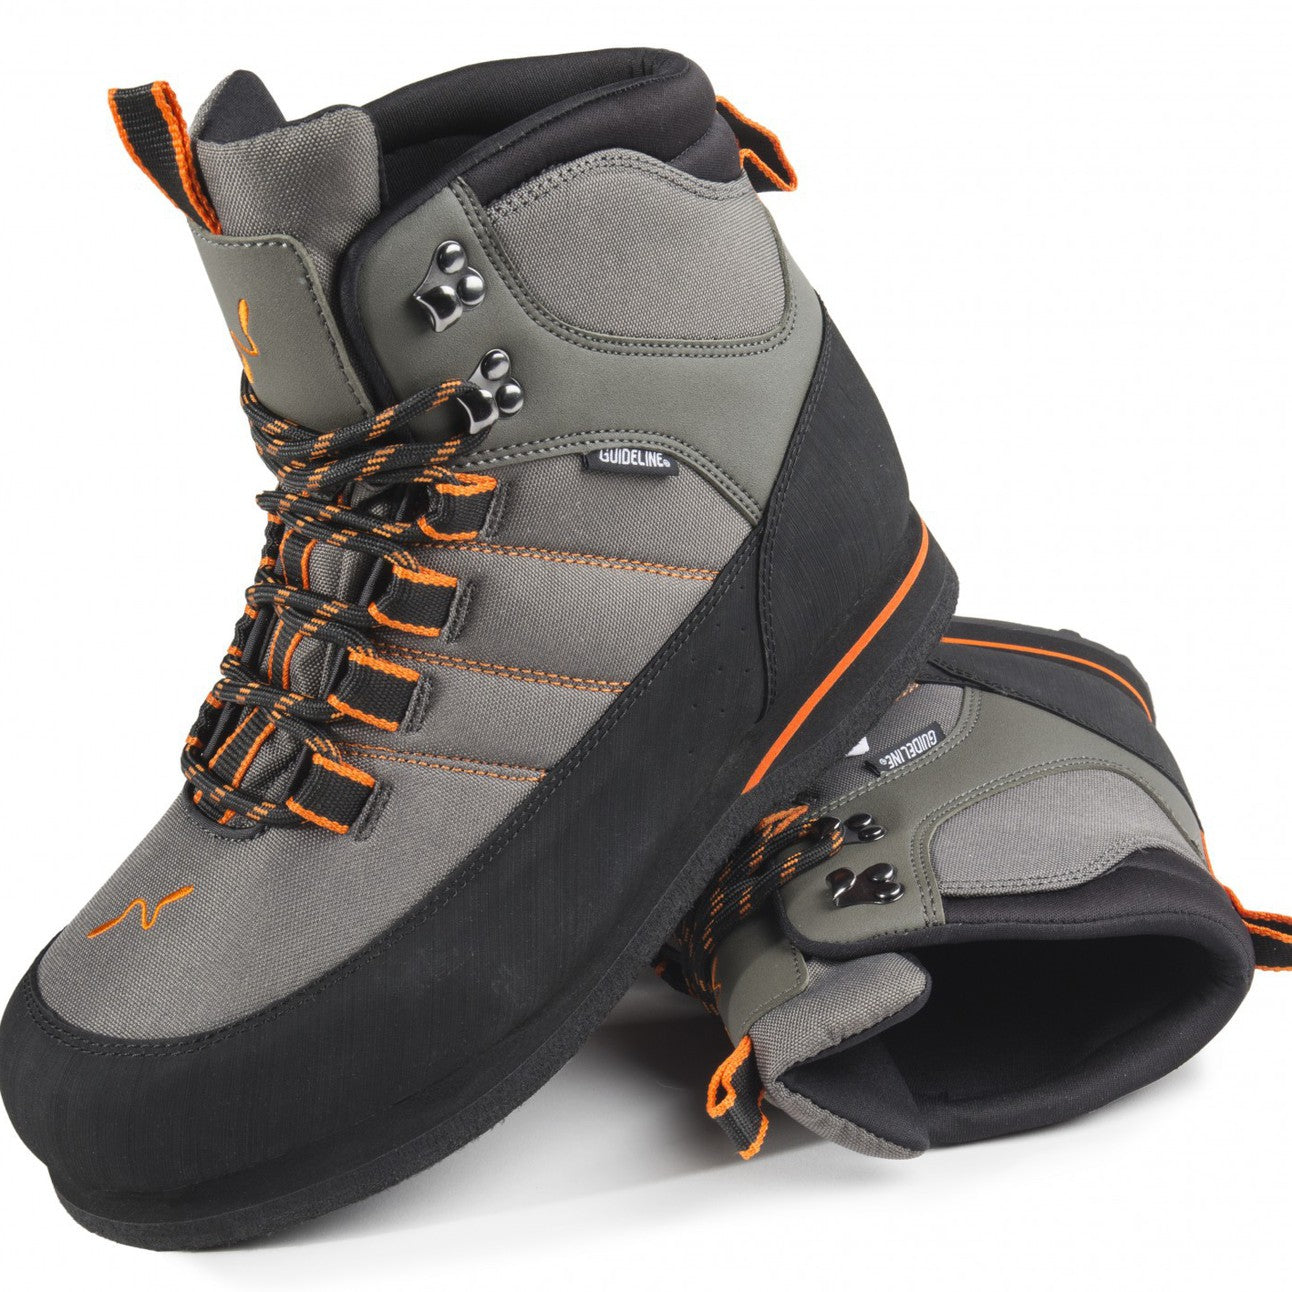 Wading Boots Laxa Guideline Traction Studs and Rubber